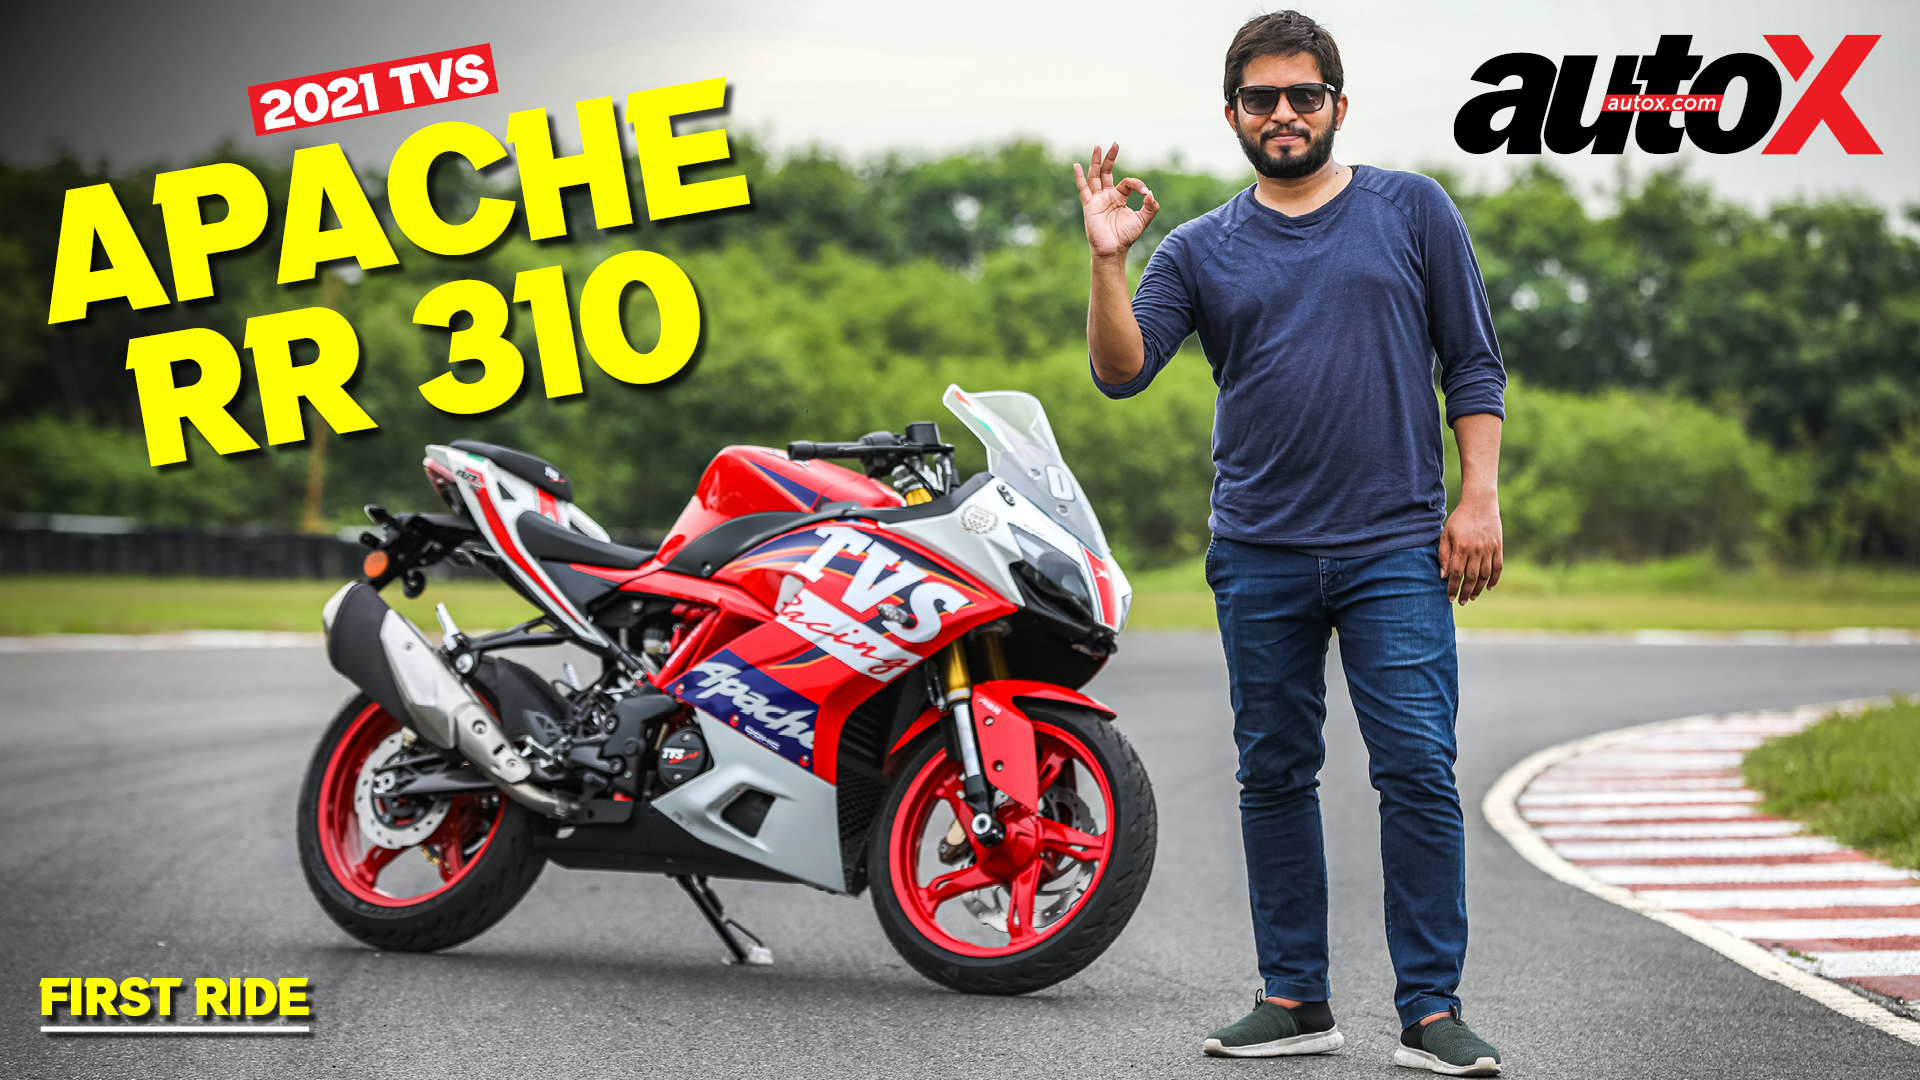 Here's why the 2021 TVS Apache RR 310 is the Best Sportsbike in India   Review   autoX